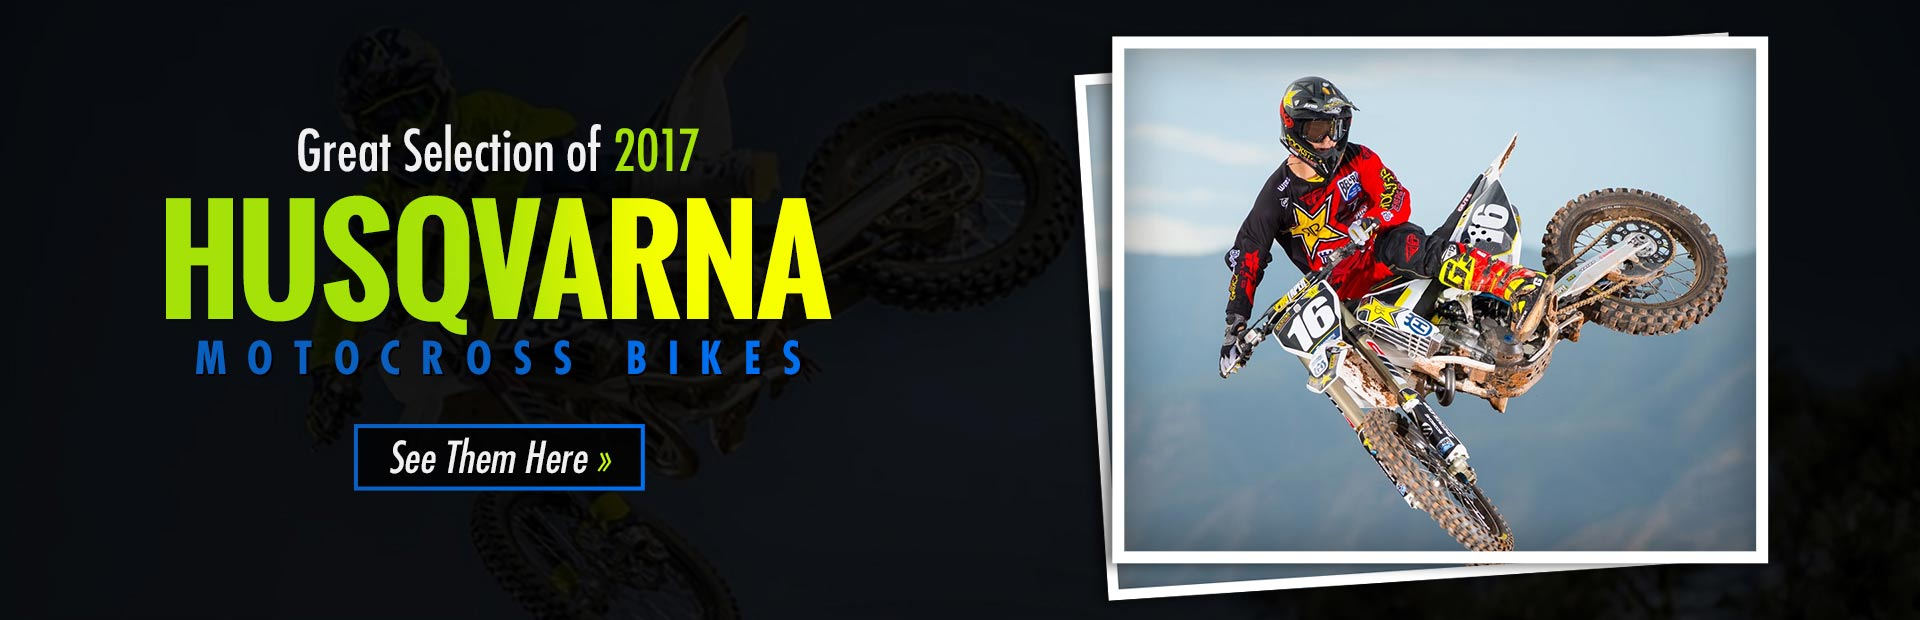 2017 Husqvarna Motocross Bikes: Click here to view the models.